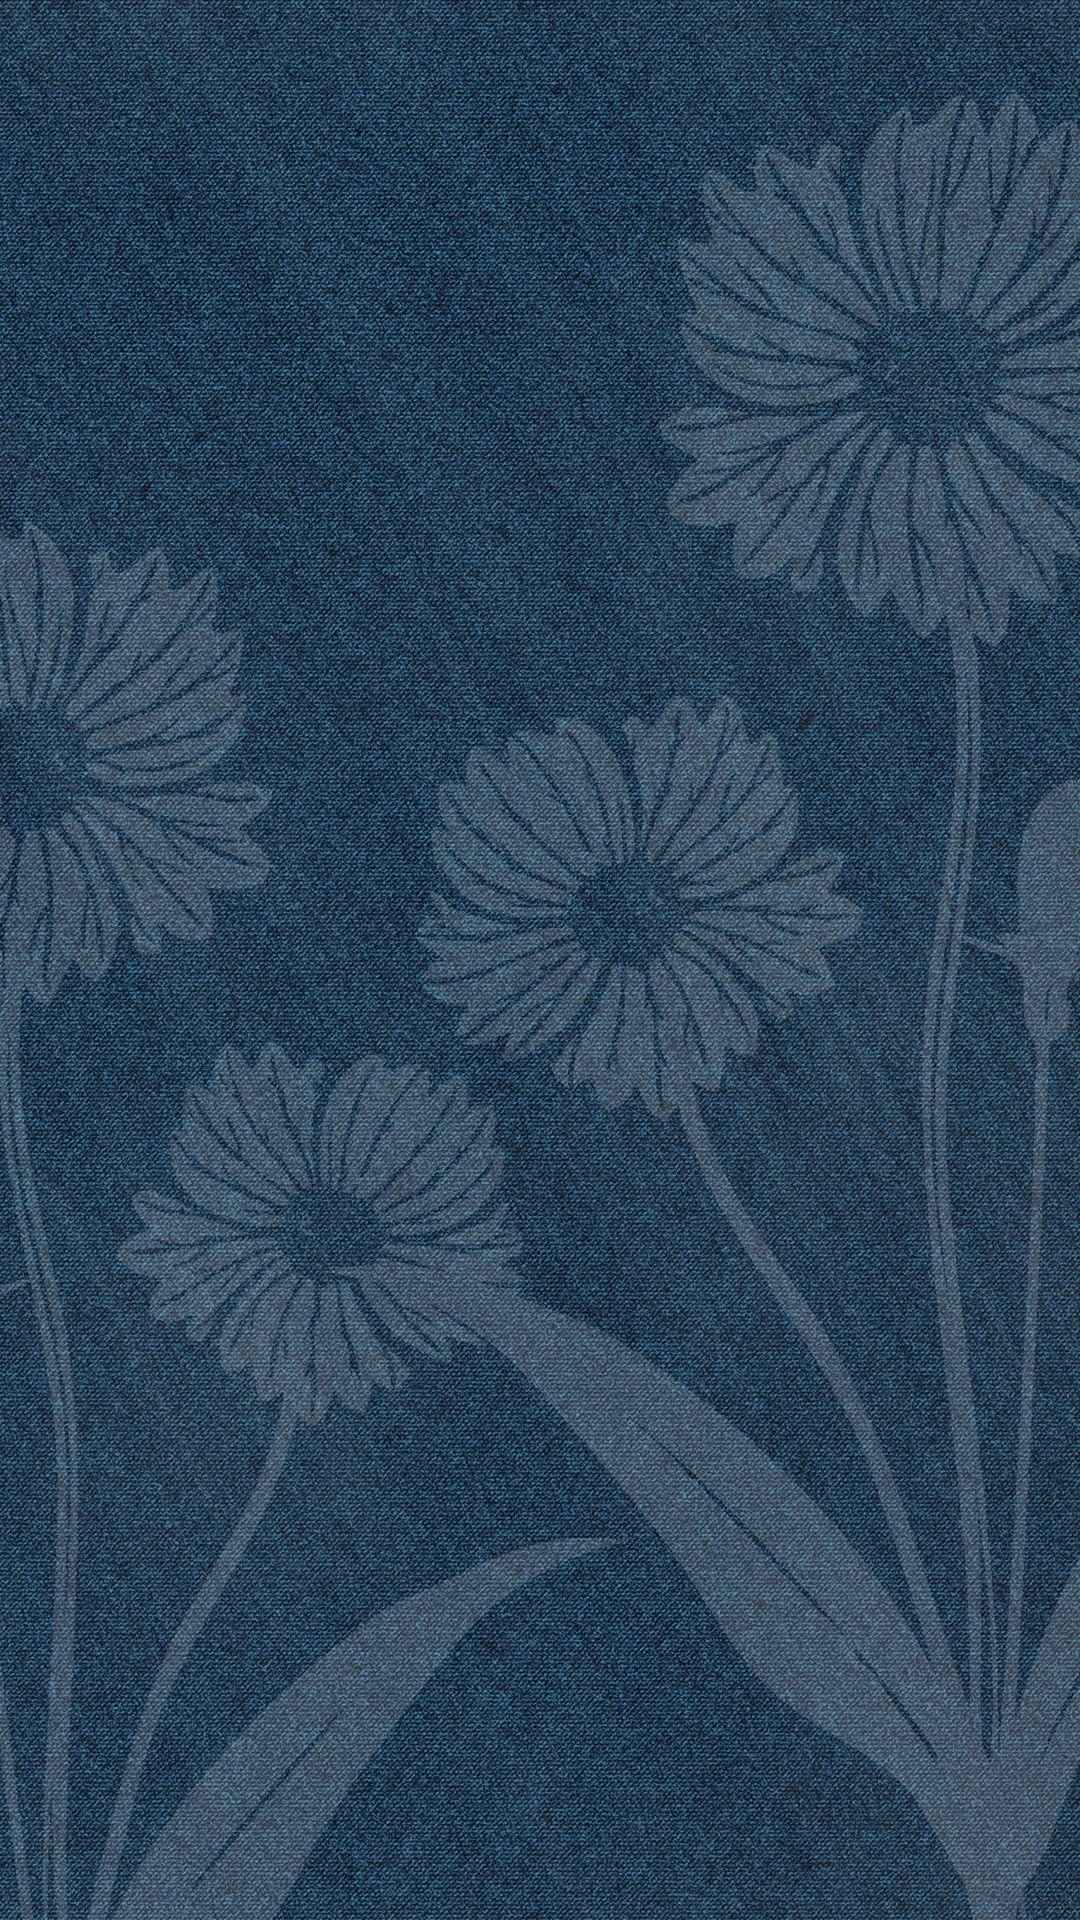 Iphone 6 Wallpaper Denim Daisy 1080x1920 Pixels